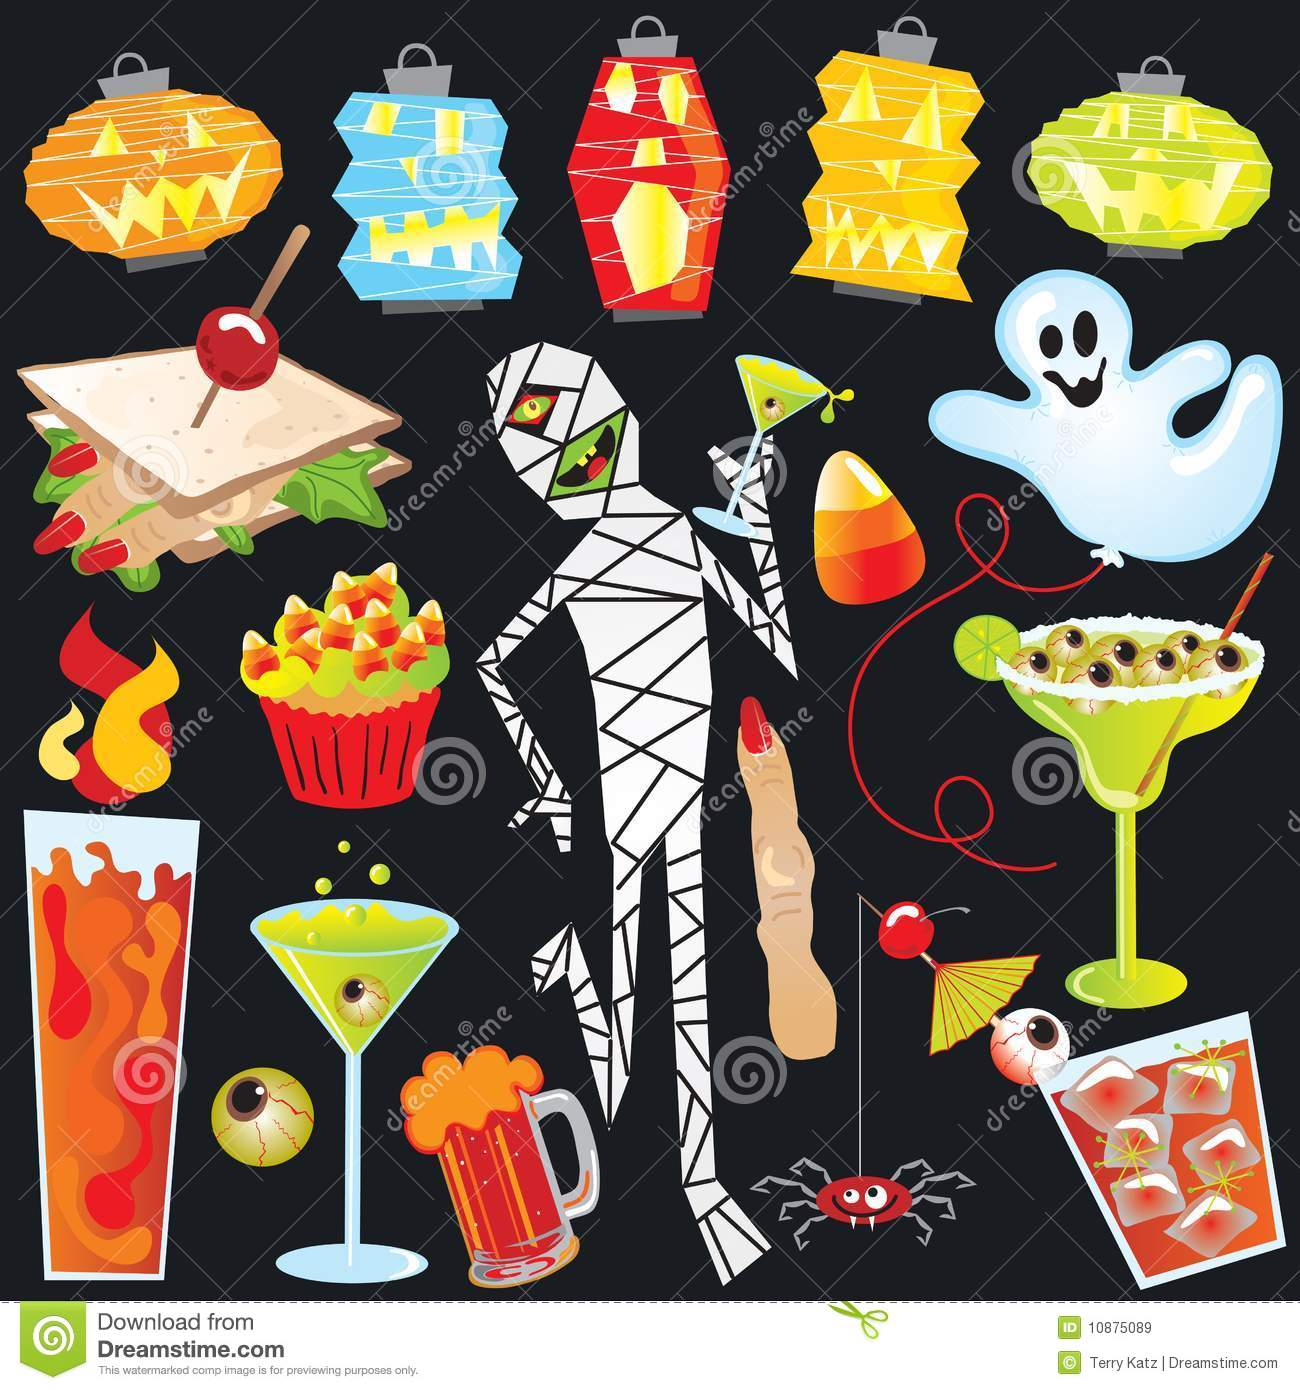 Halloween Party Clip Art Royalty Free Stock Images.